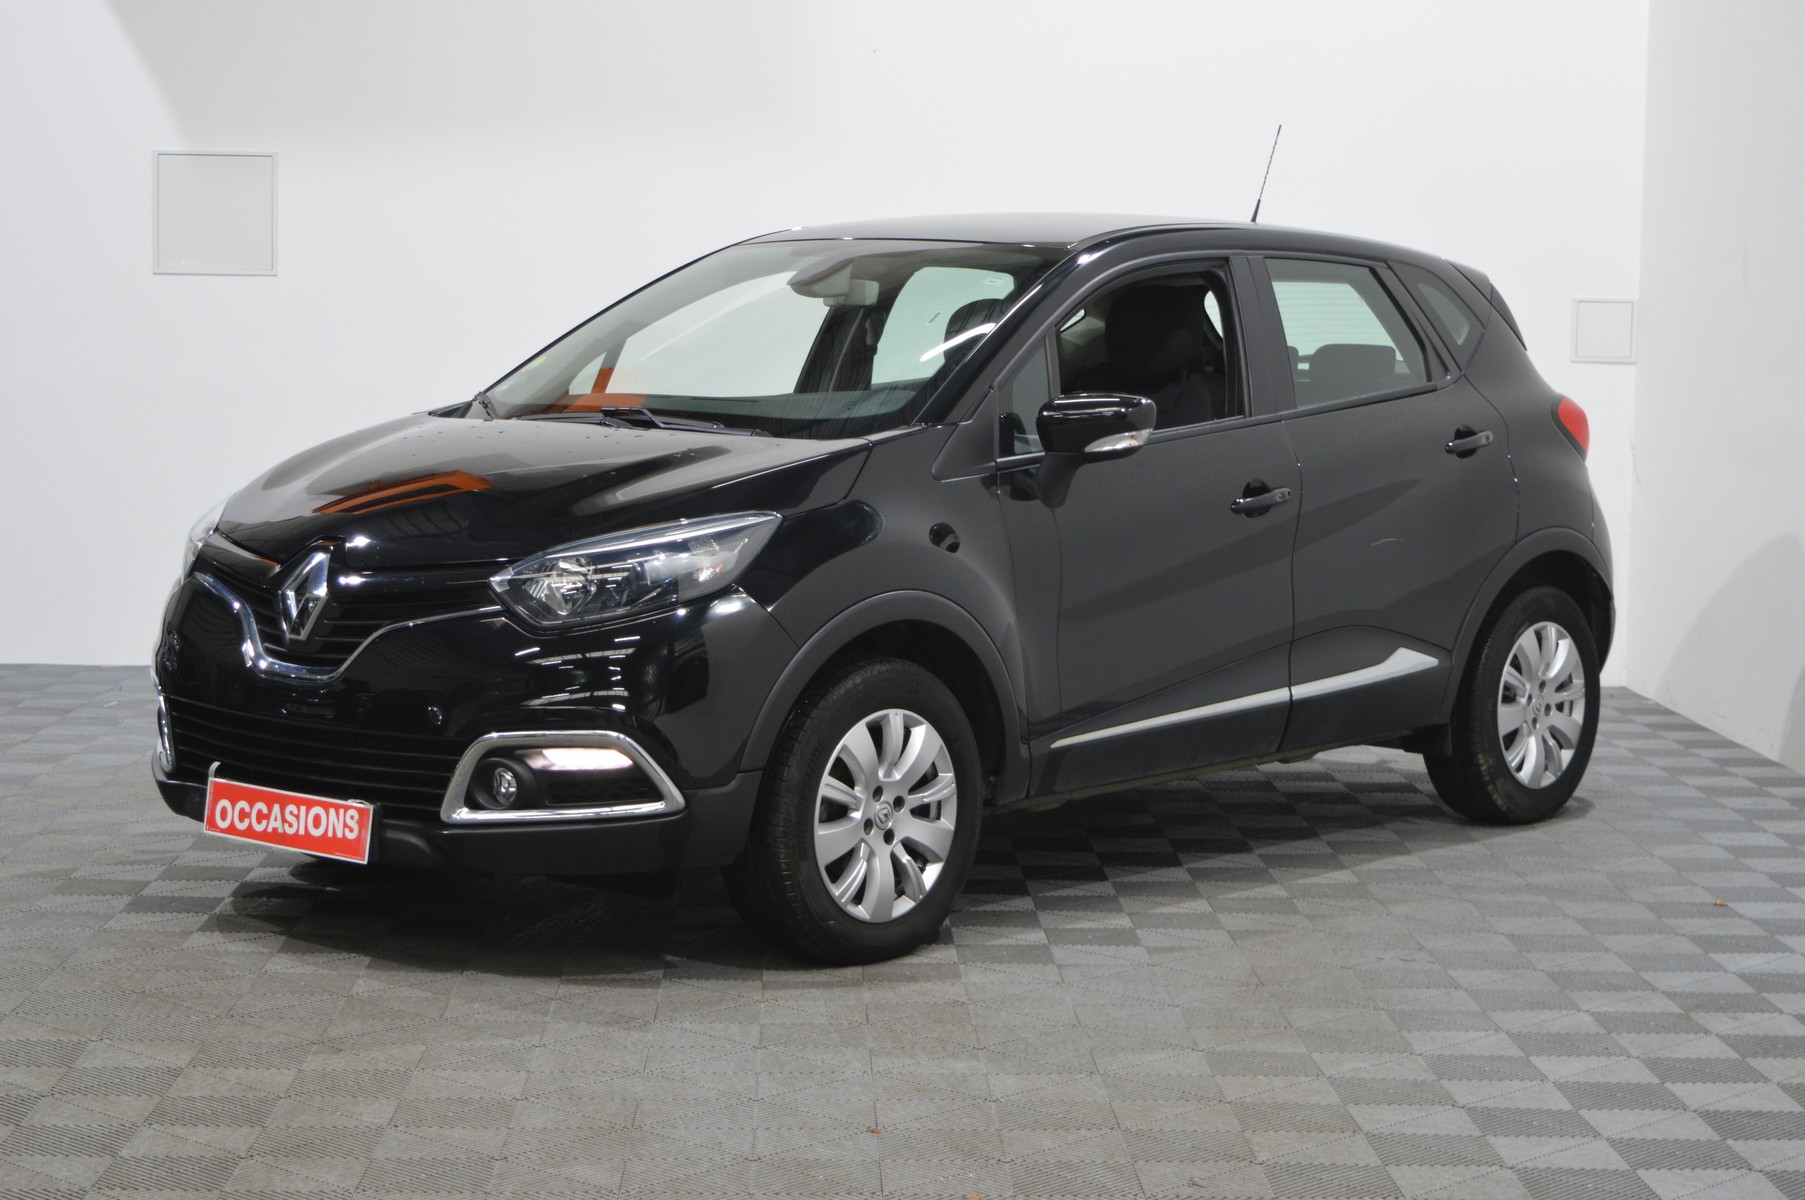 RENAULT CAPTUR BUSINESS dCi 90 Energy eco² Business d'occasion